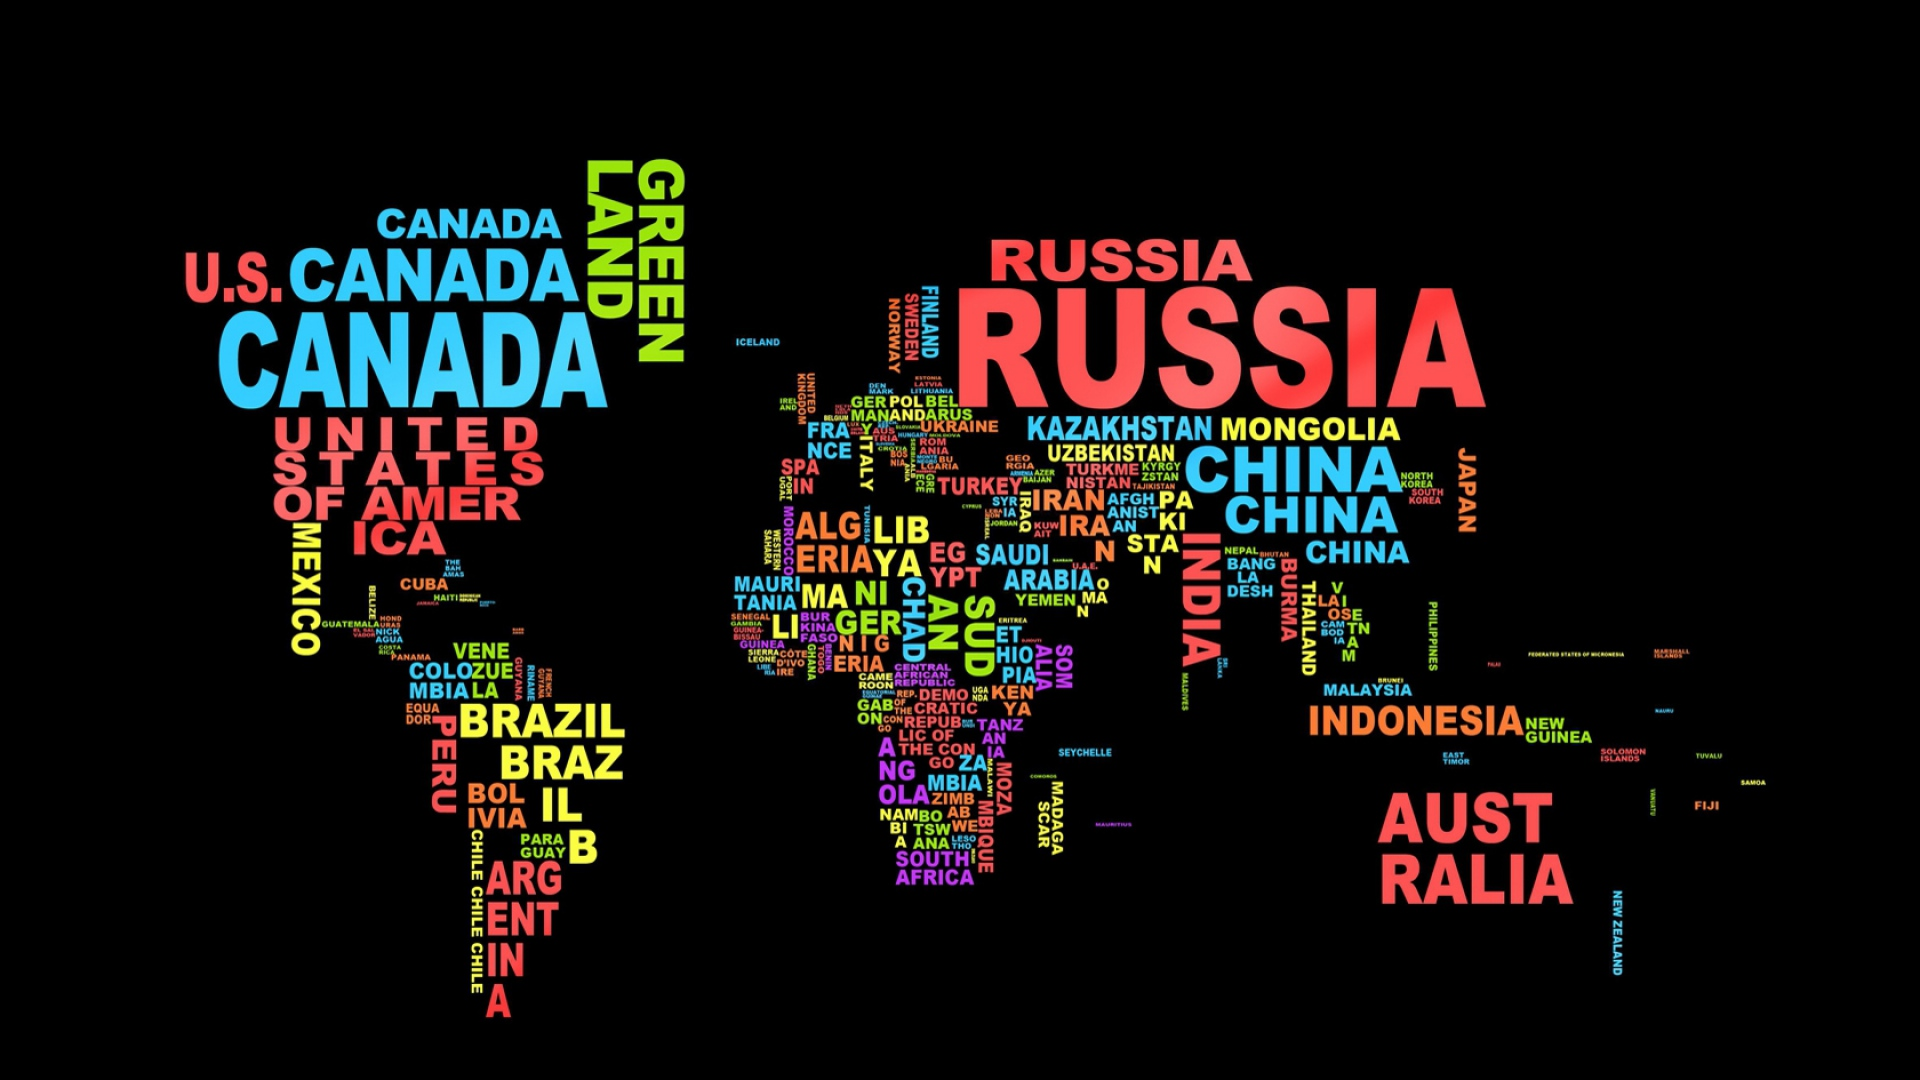 Get The Latest Map Country Globe News Pictures And Videos Learn All About From Wallpapers4uorg Your Wallpaper Source